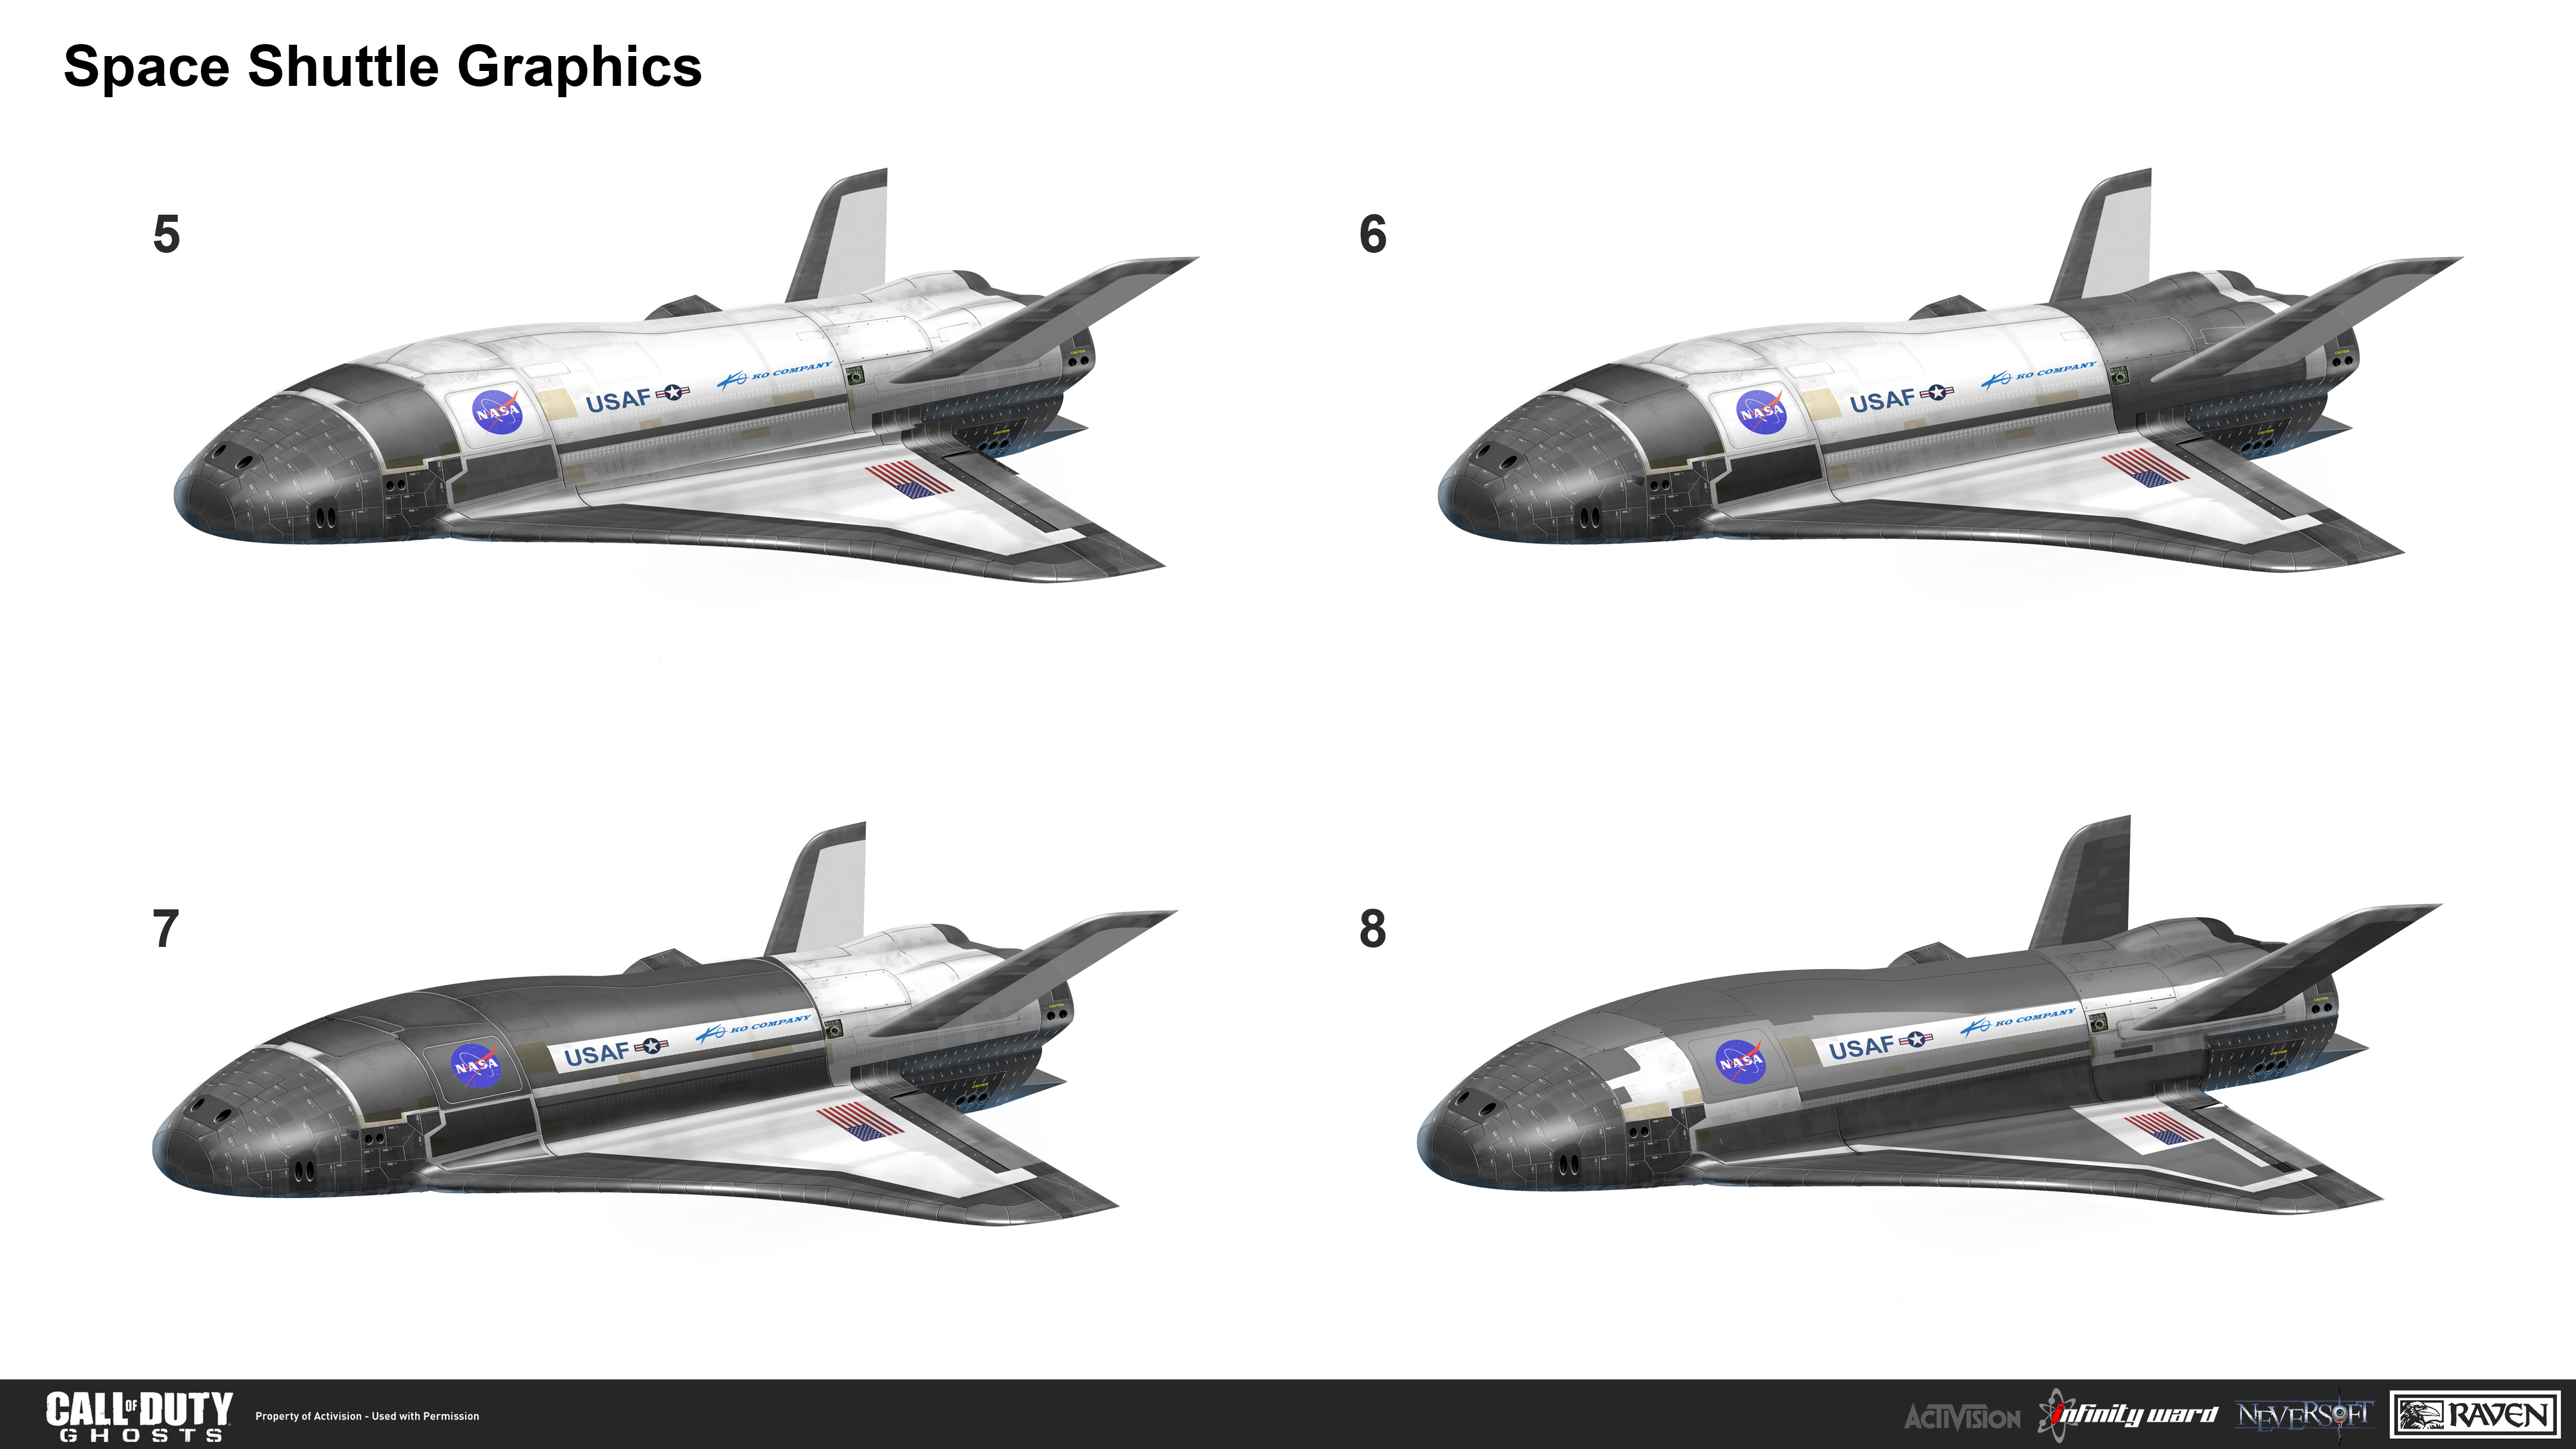 sko_03-22-13_space2_shuttle_graphics2